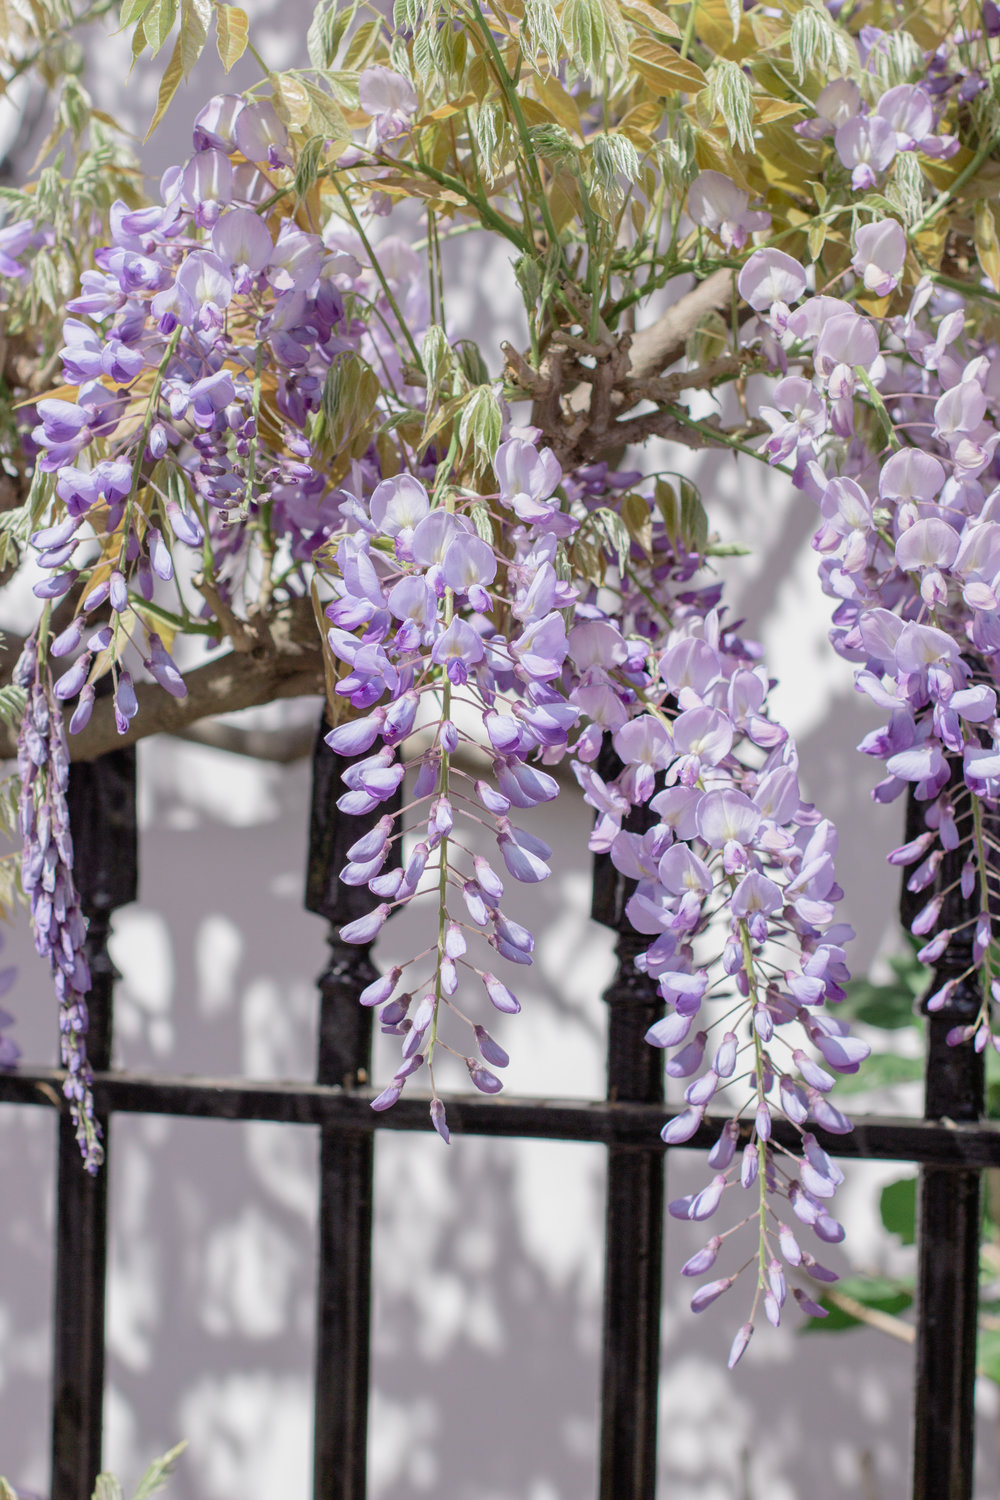 Where to find wisteria in London - the best wisteria hysteria house in Notting Hill | Sundays and Somedays